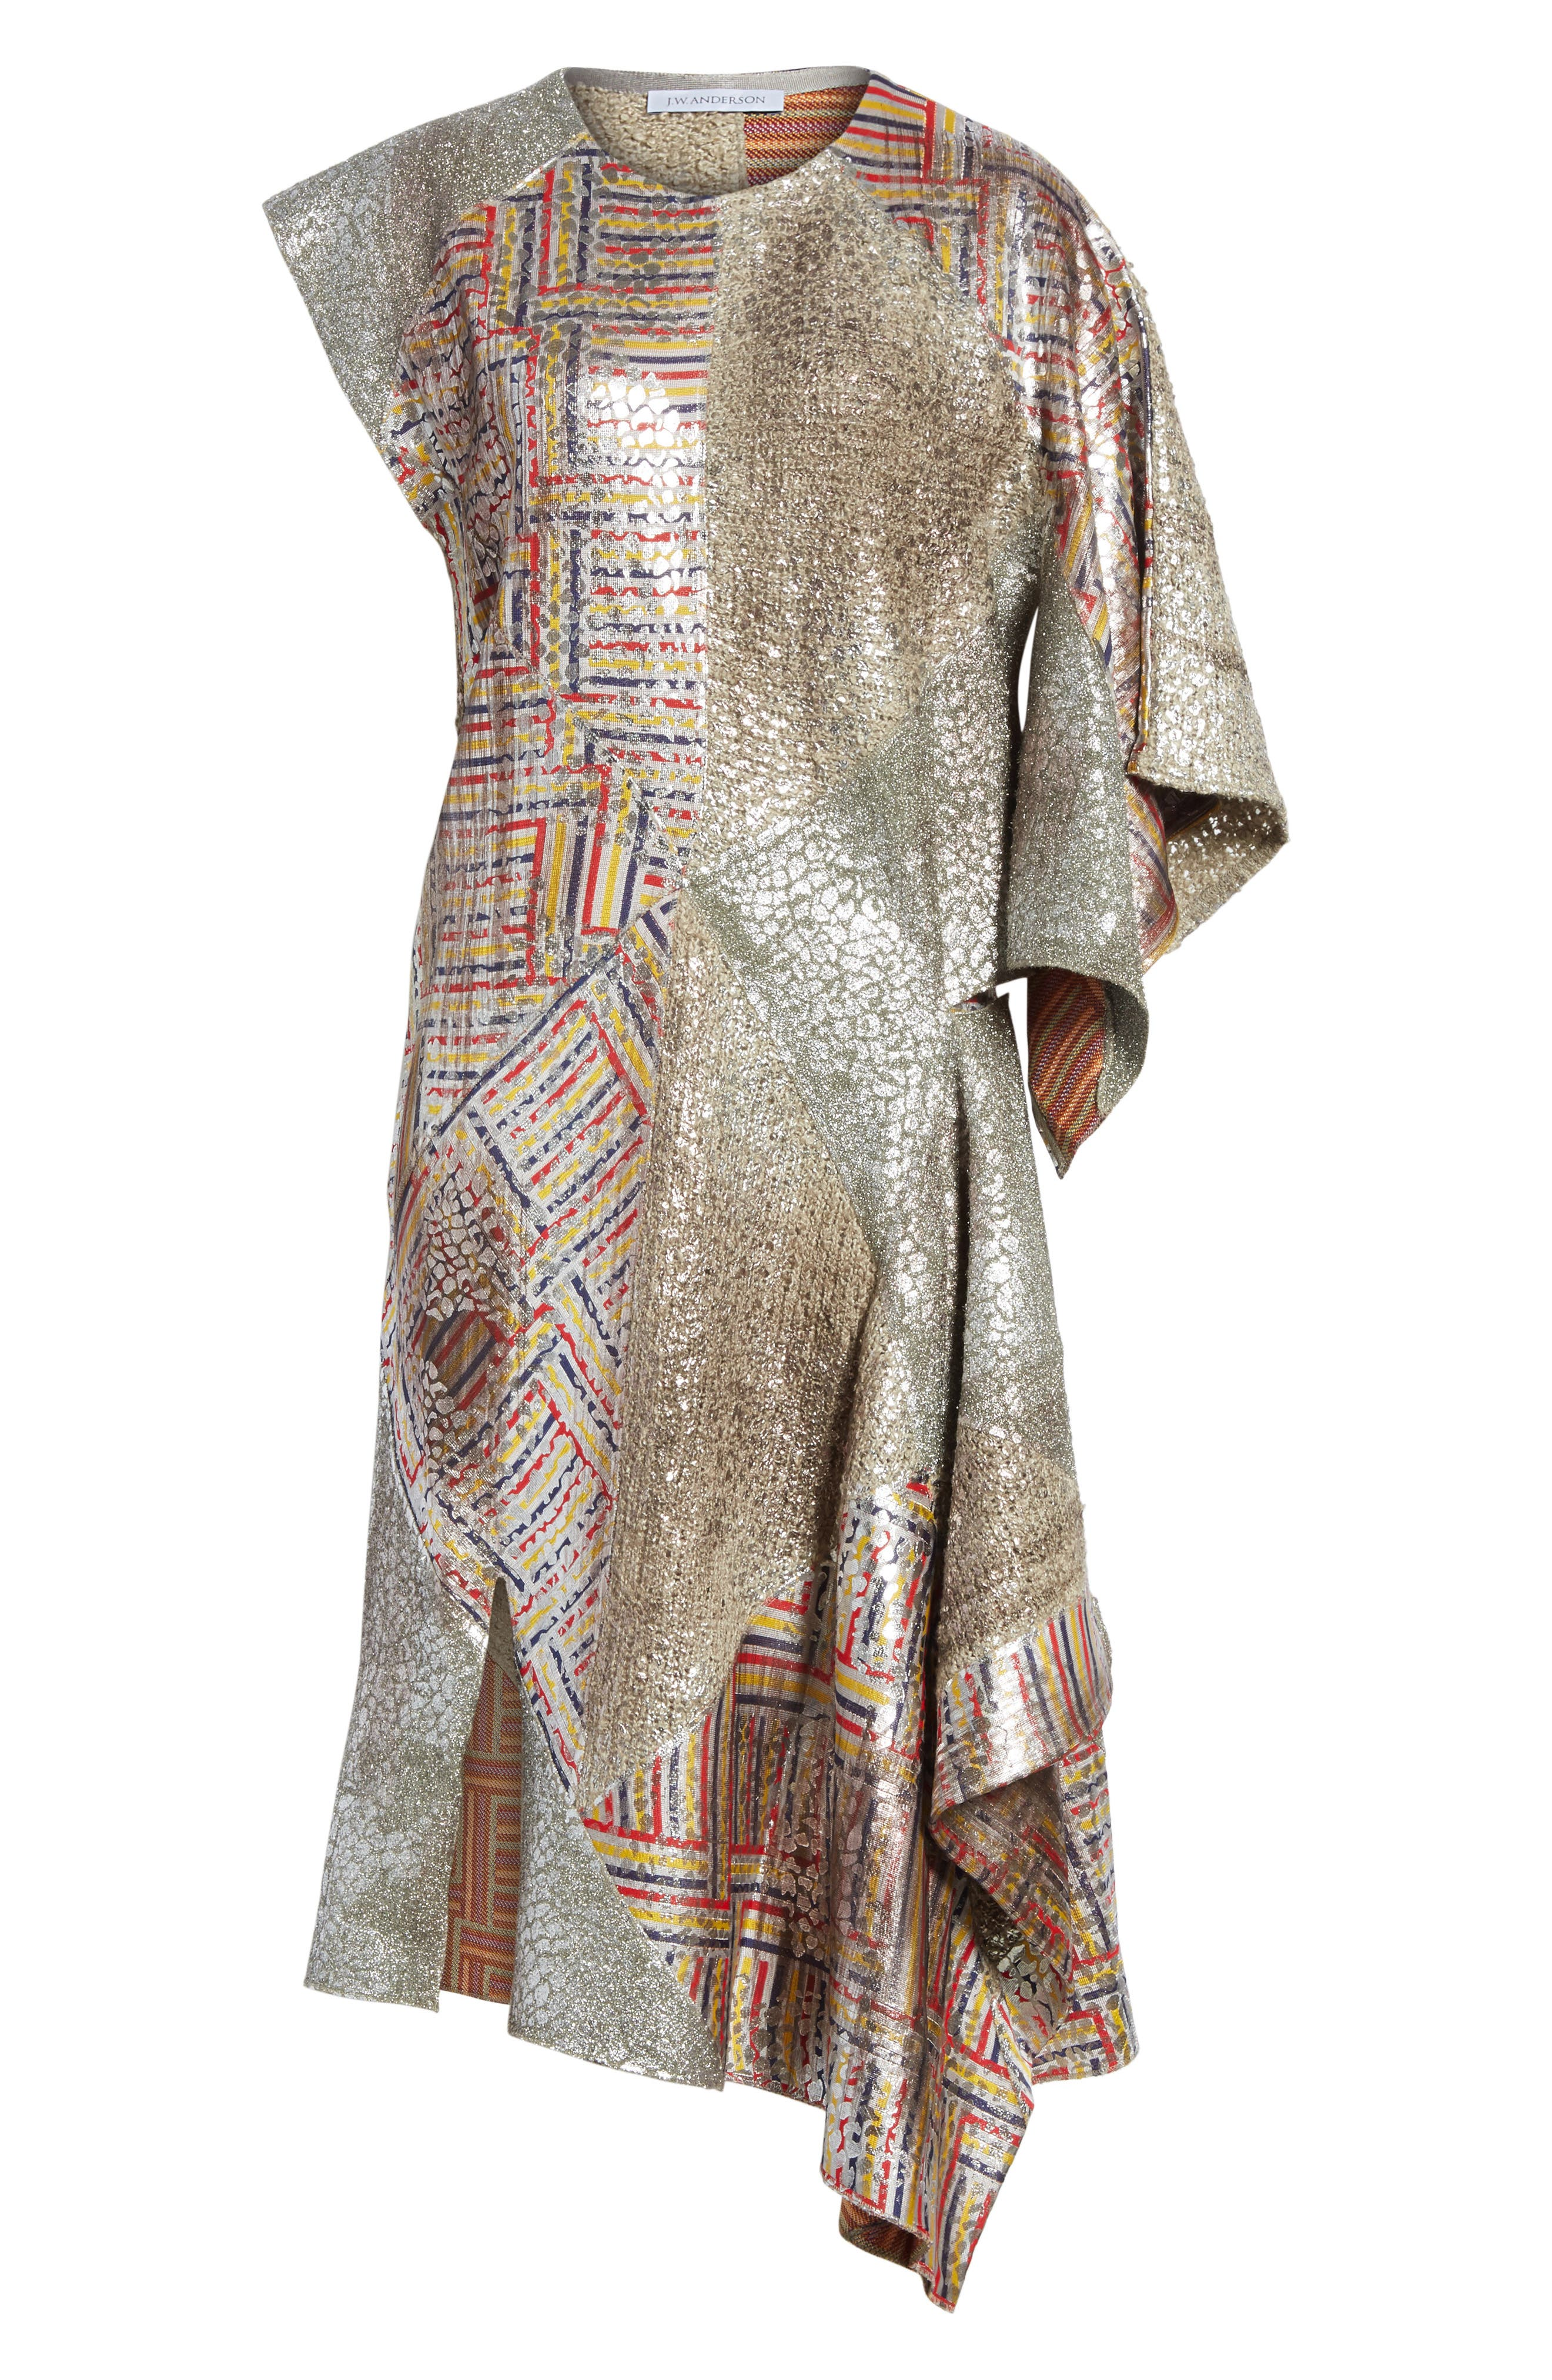 J.W.ANDERSON Geo Patterned Asymmetrical Draped Dress,                             Alternate thumbnail 6, color,                             040